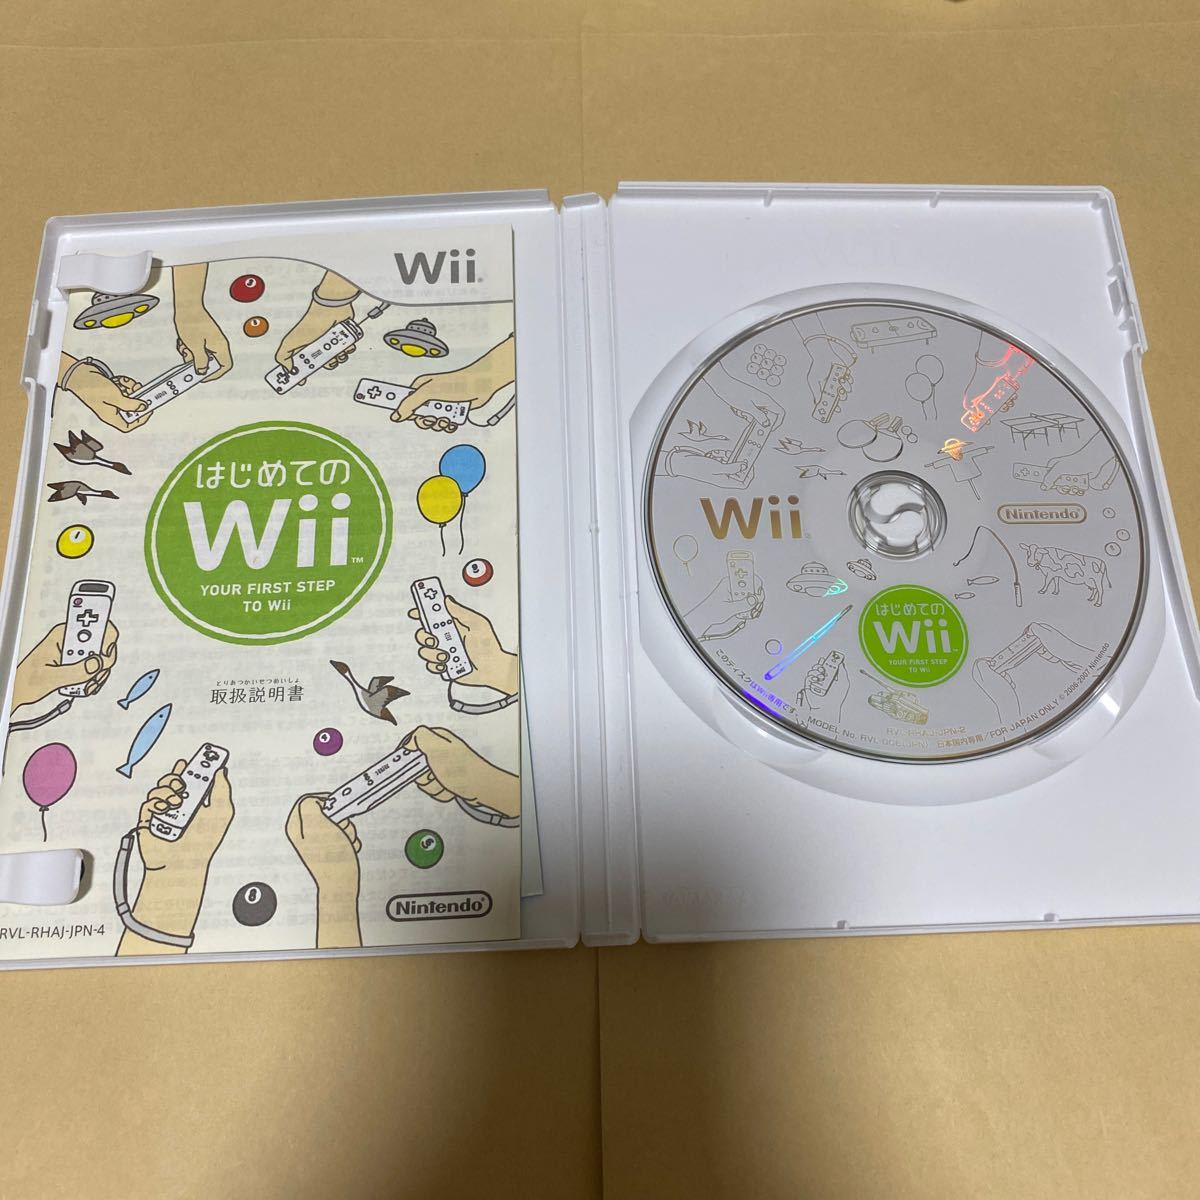 WiiスポーツリゾートとはじめてのWii  Wii